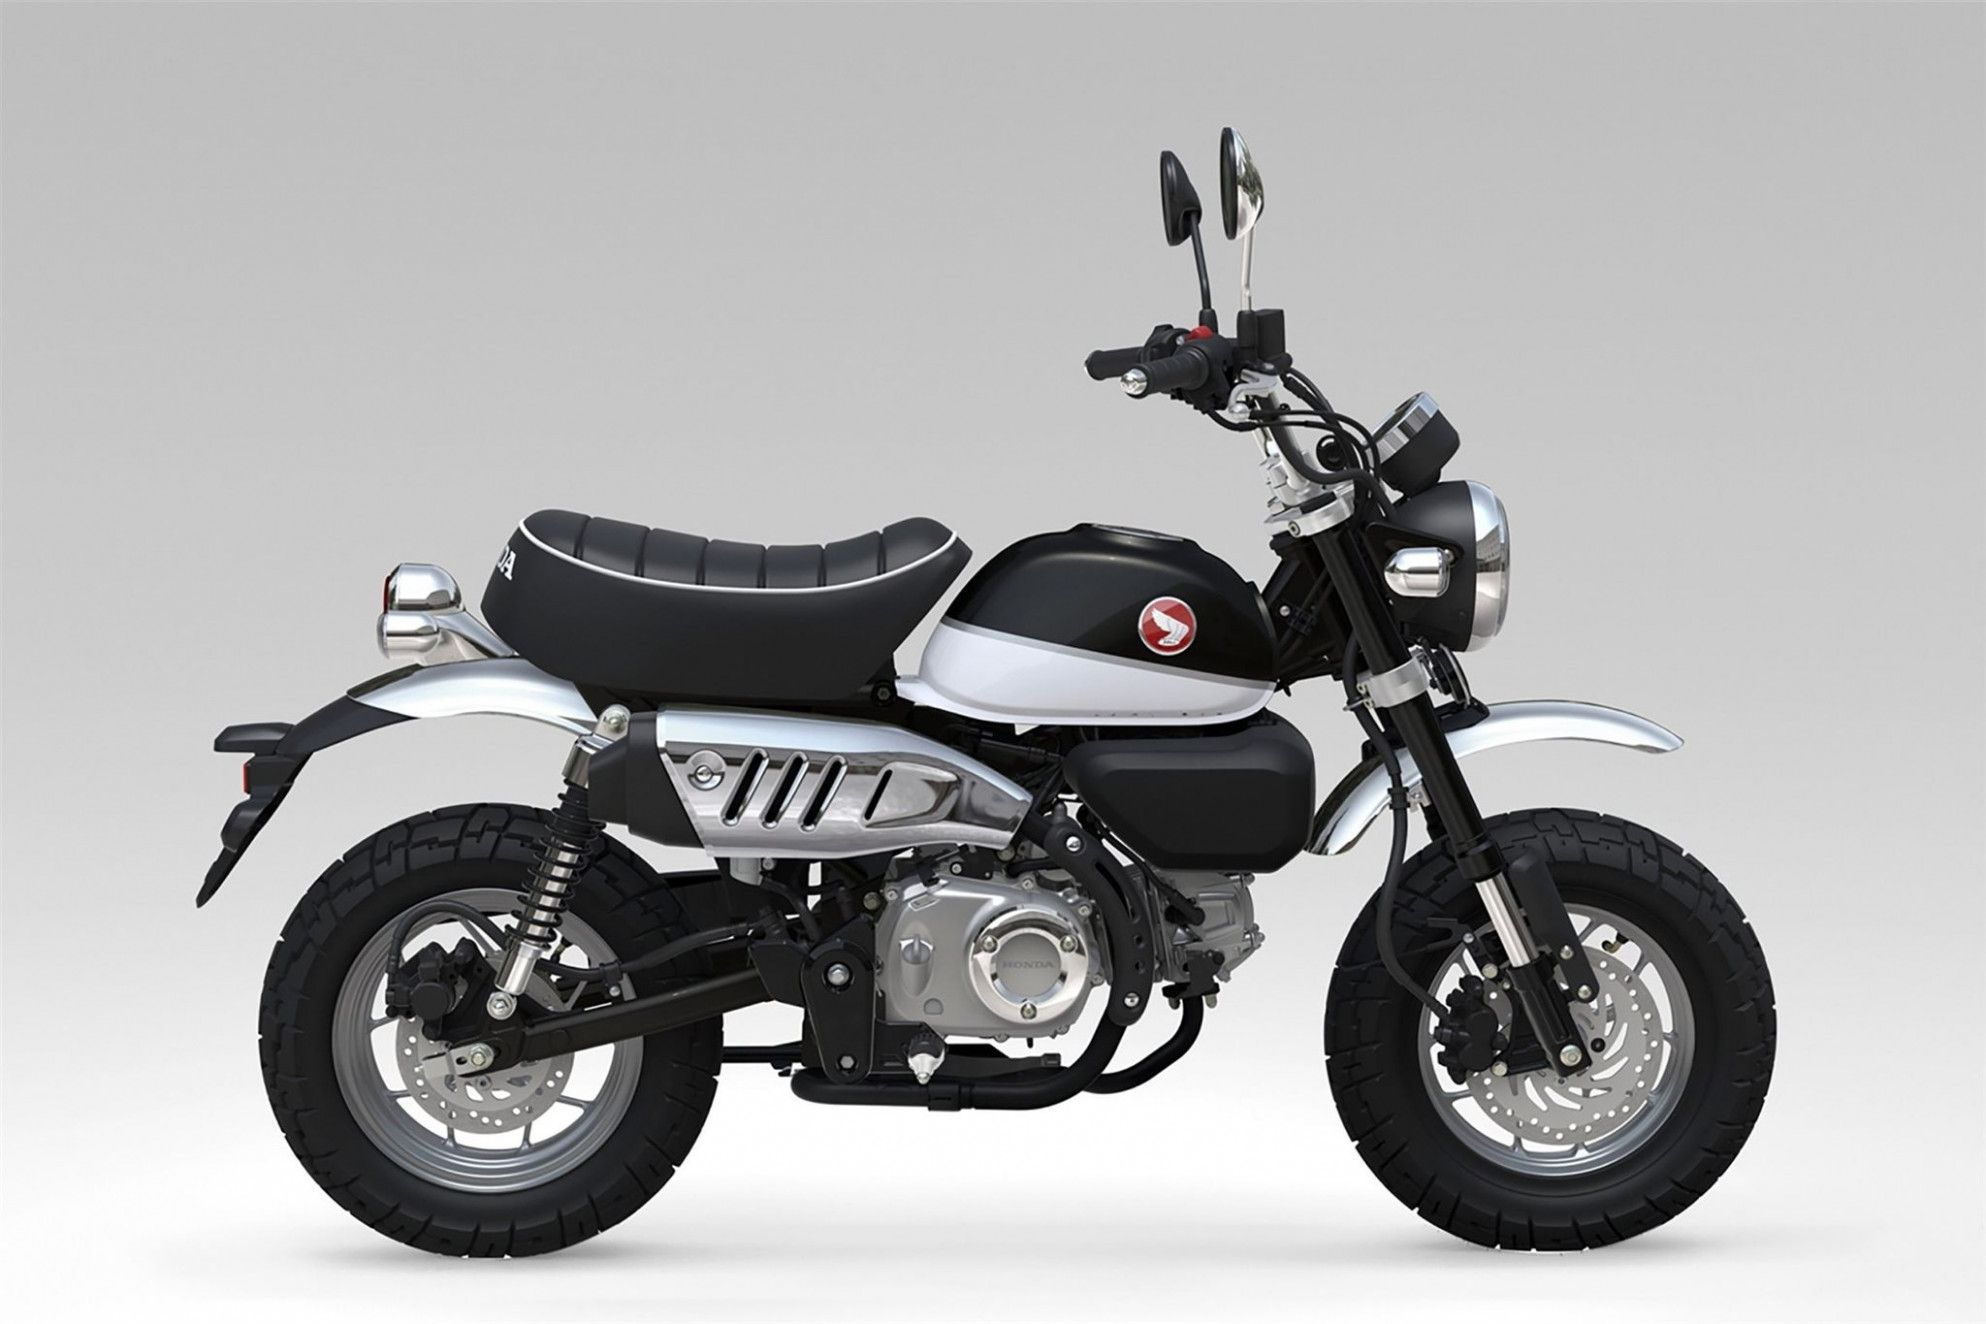 Honda Monkey 2020 Style In 2020 Black Honda Mini Bike Honda